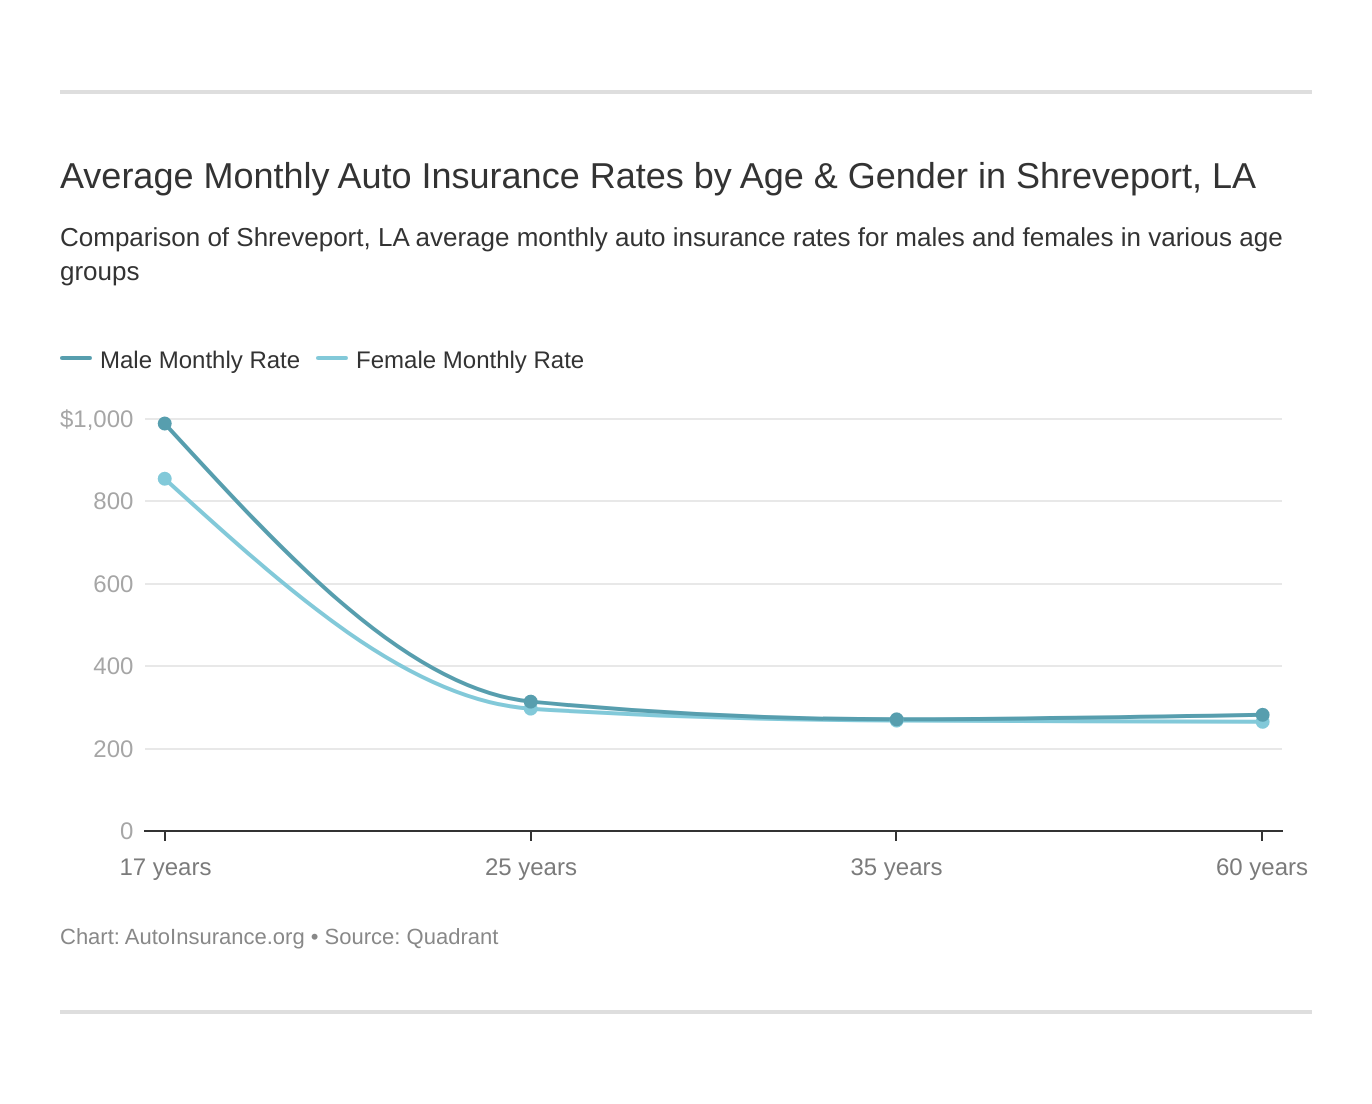 Average Monthly Auto Insurance Rates by Age & Gender in Shreveport, LA